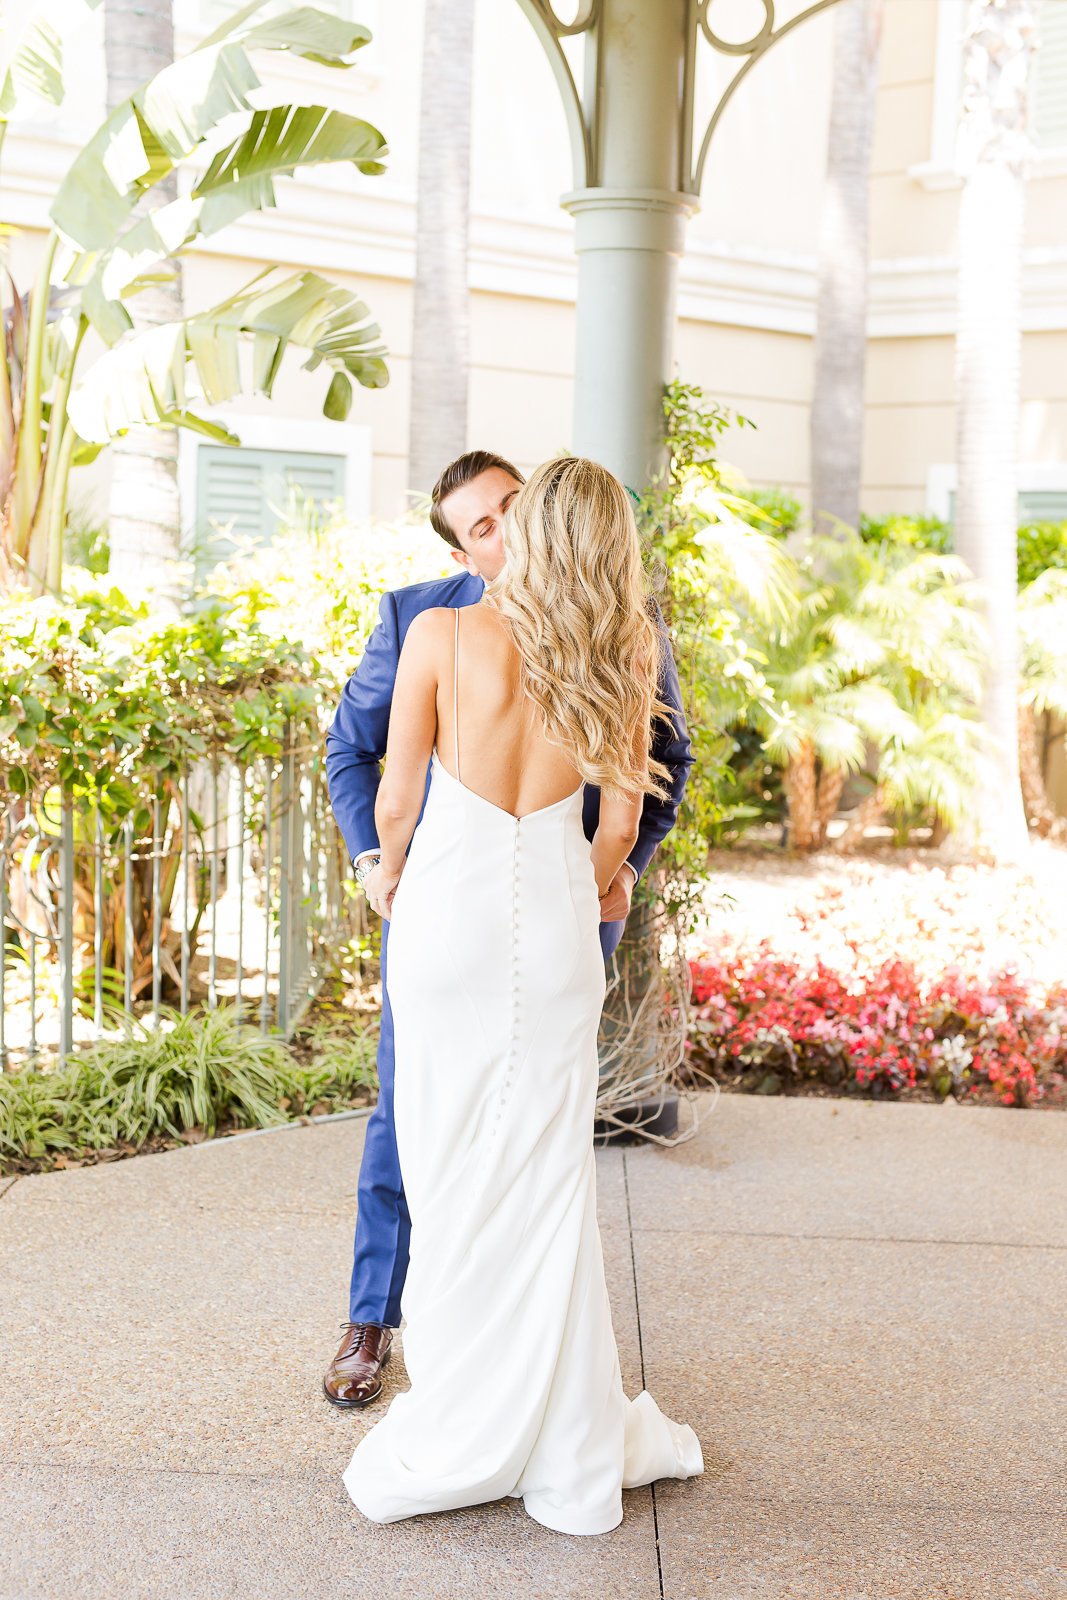 Newport Beach Caliornia Destination Wedding Theresa Bridget Photography-18